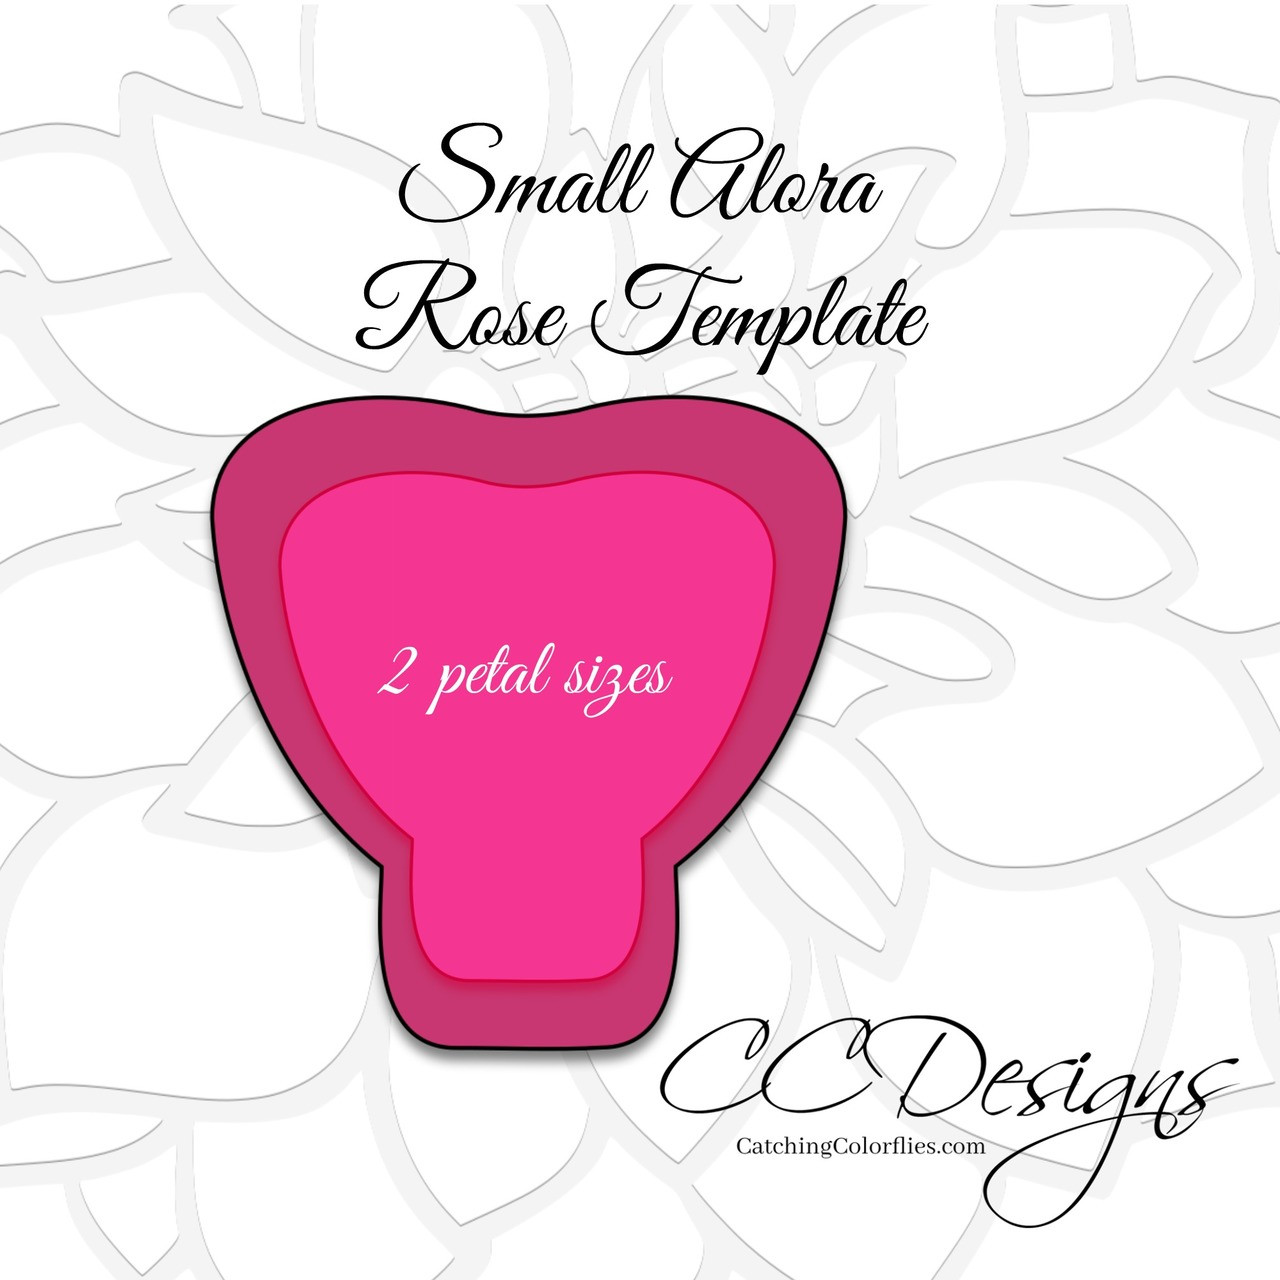 Small Alora Paper Rose Template Catching Colorlfies